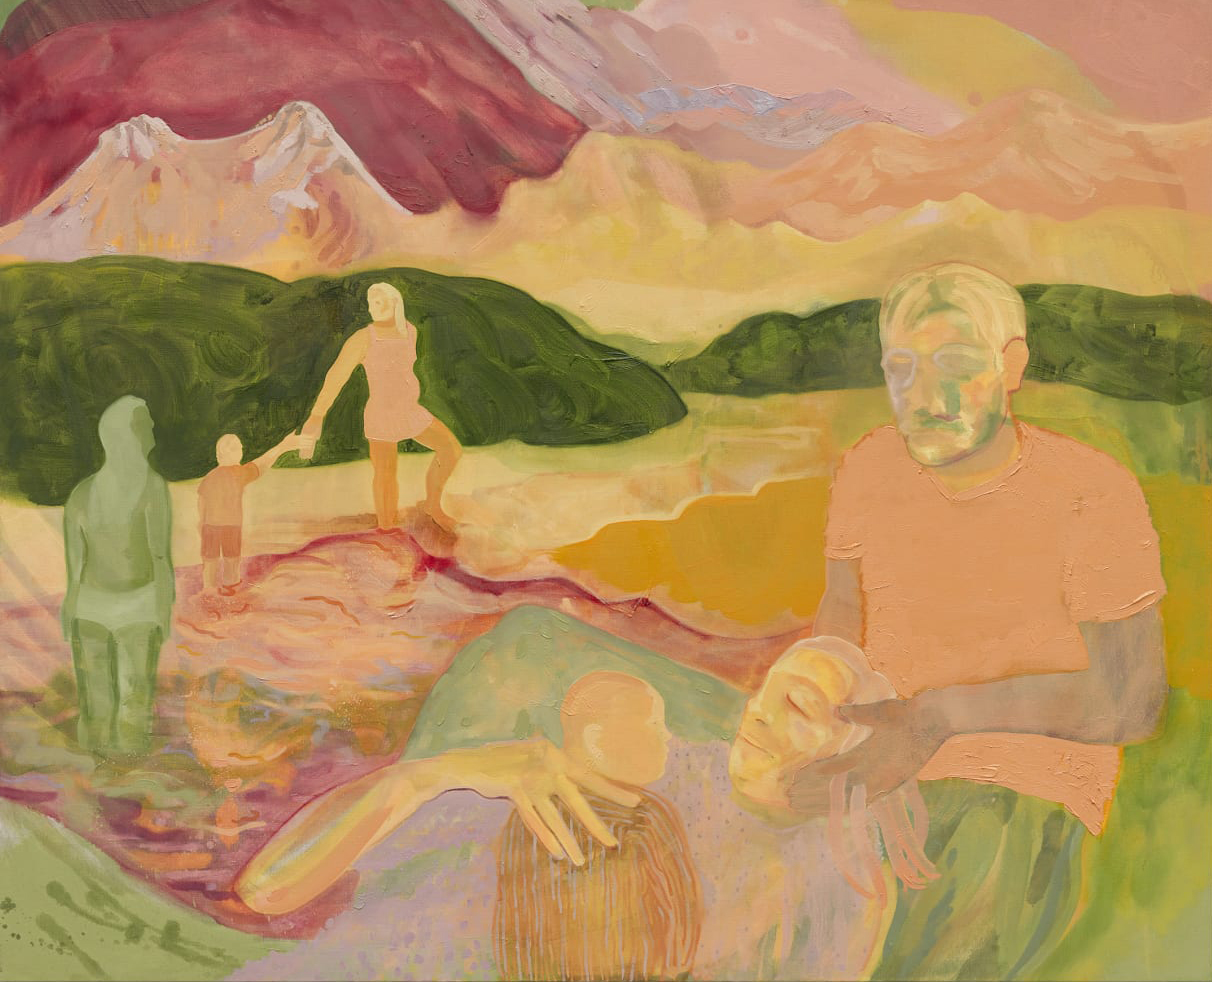 In near-transparent washes of light pastel color, shapes of people are painted within a dreamlike landscape of hills, mountains and water. In the foreground, a man holds the head of a woman, who is lying down and cradling a baby; behind them, a woman leads a child out of a river.